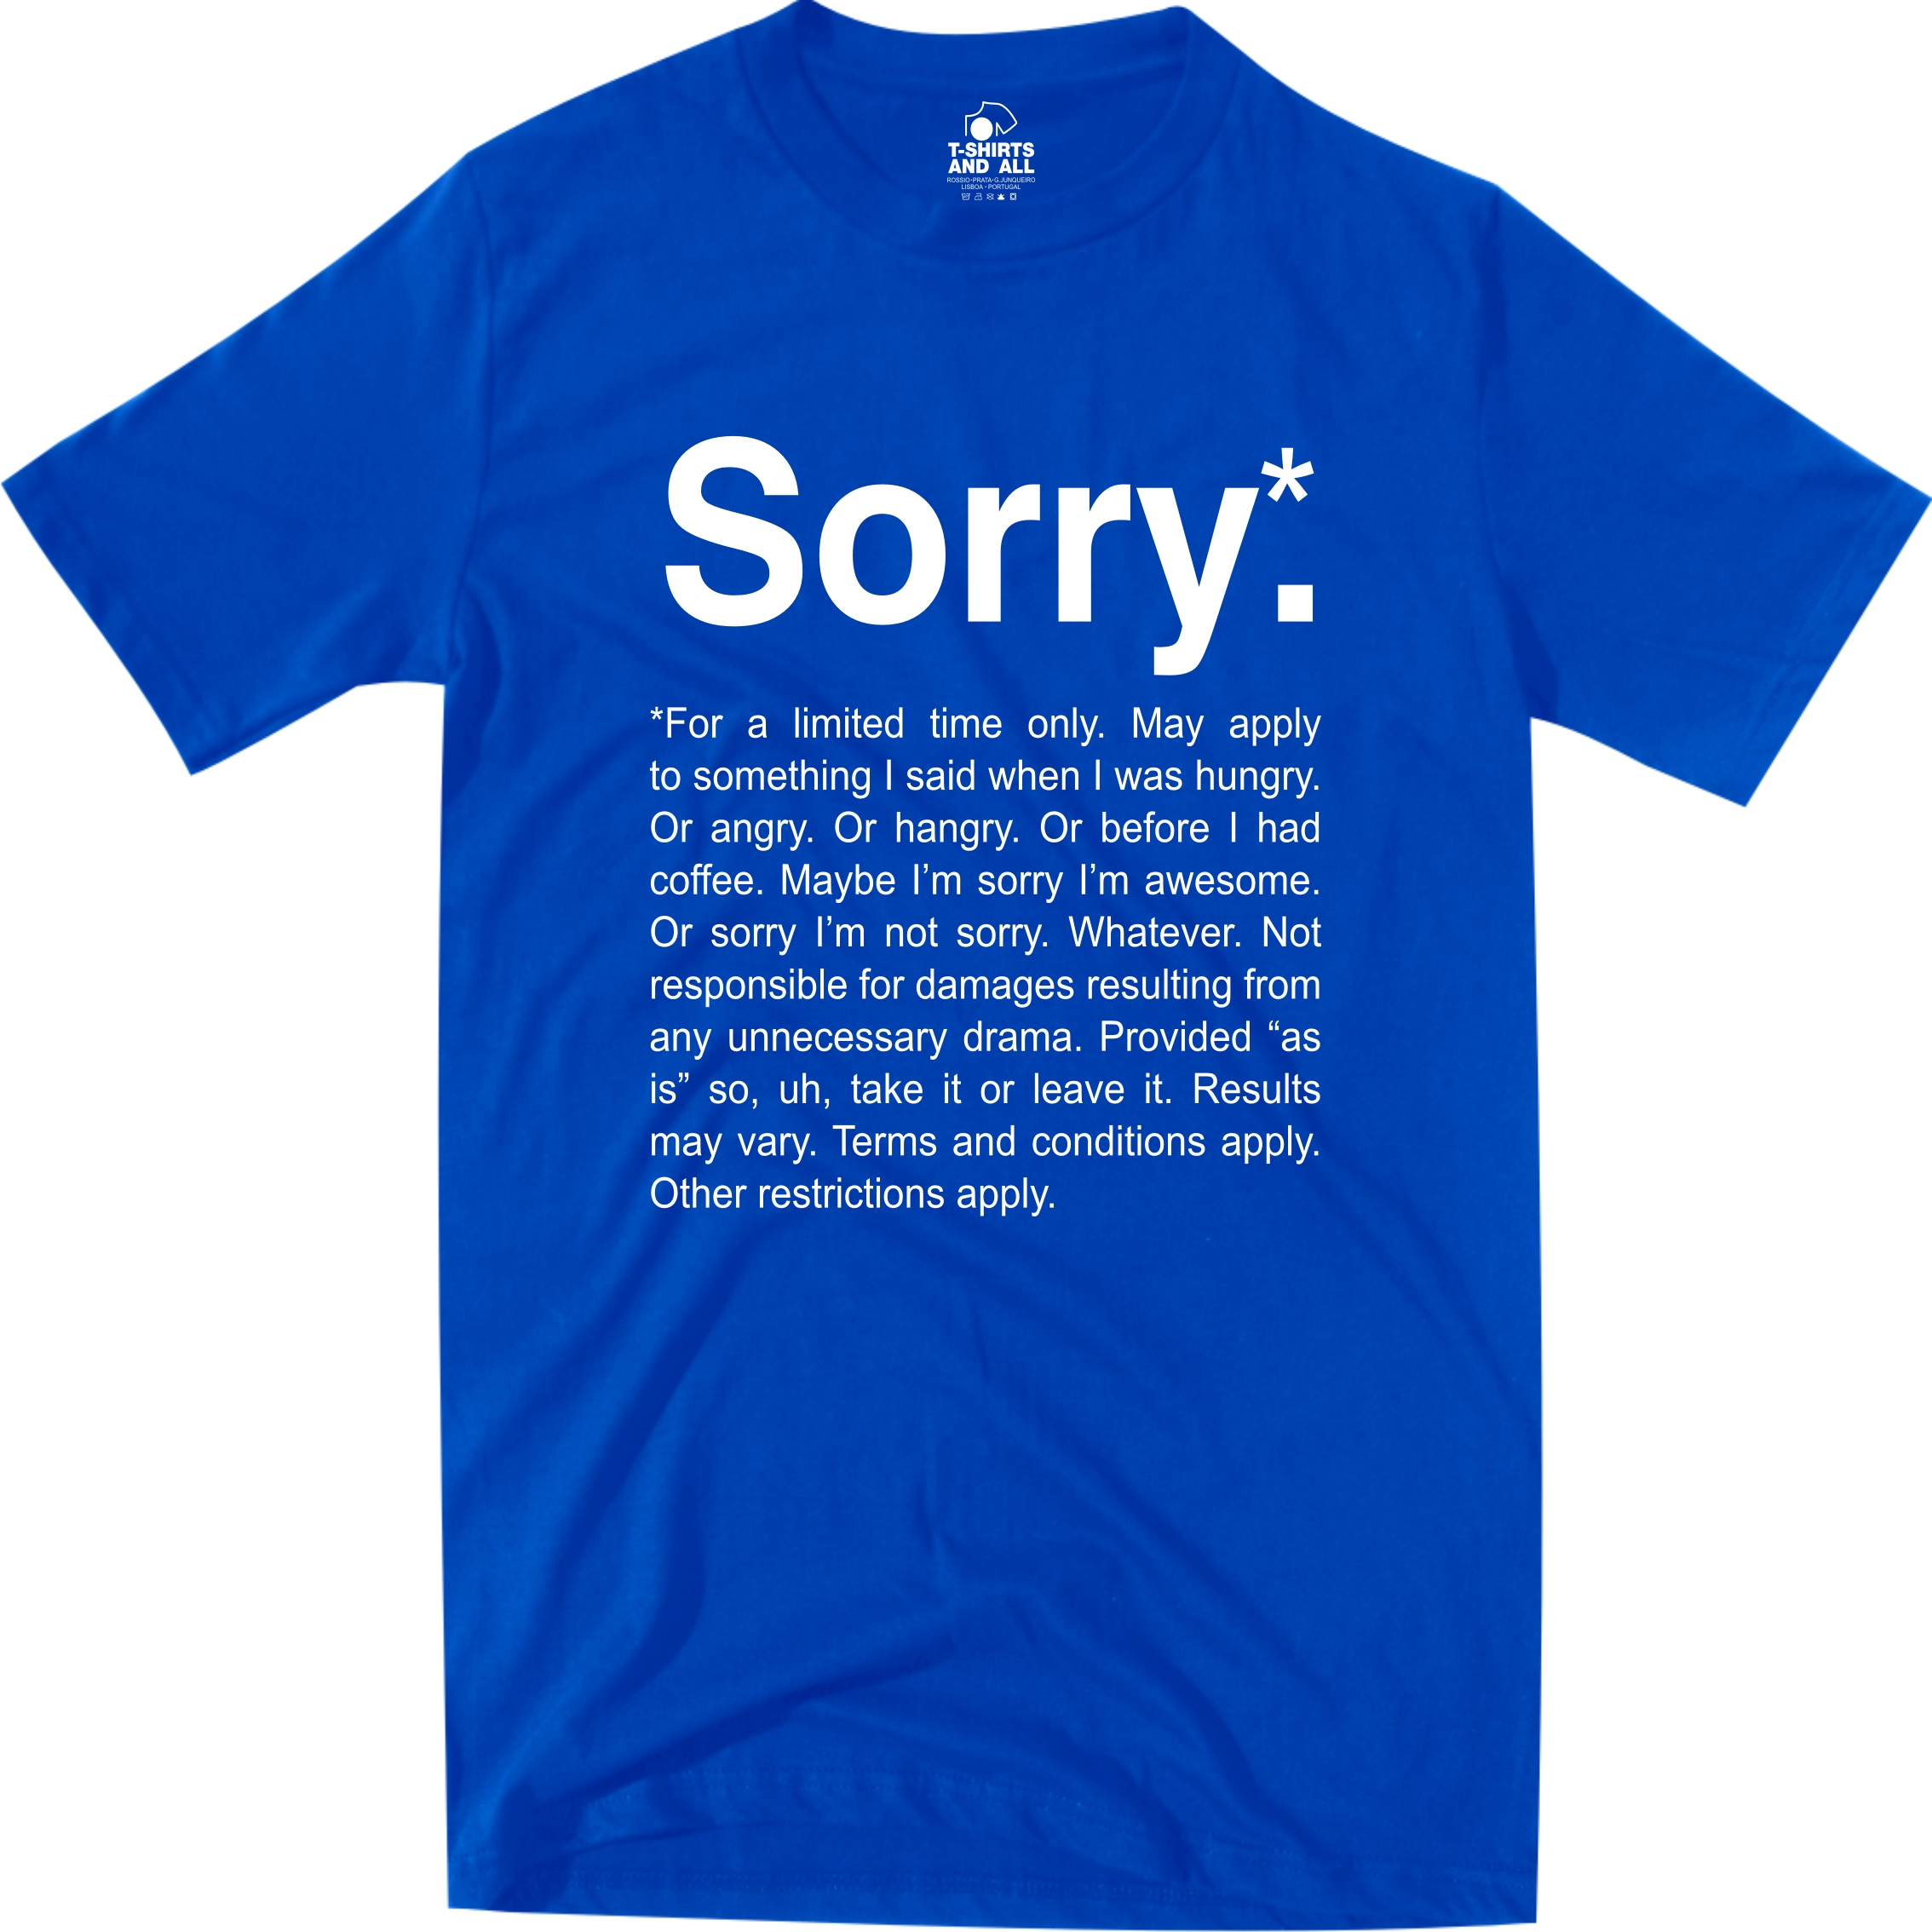 Sorry Heather T-Shirt Not Sorry Royal Tee